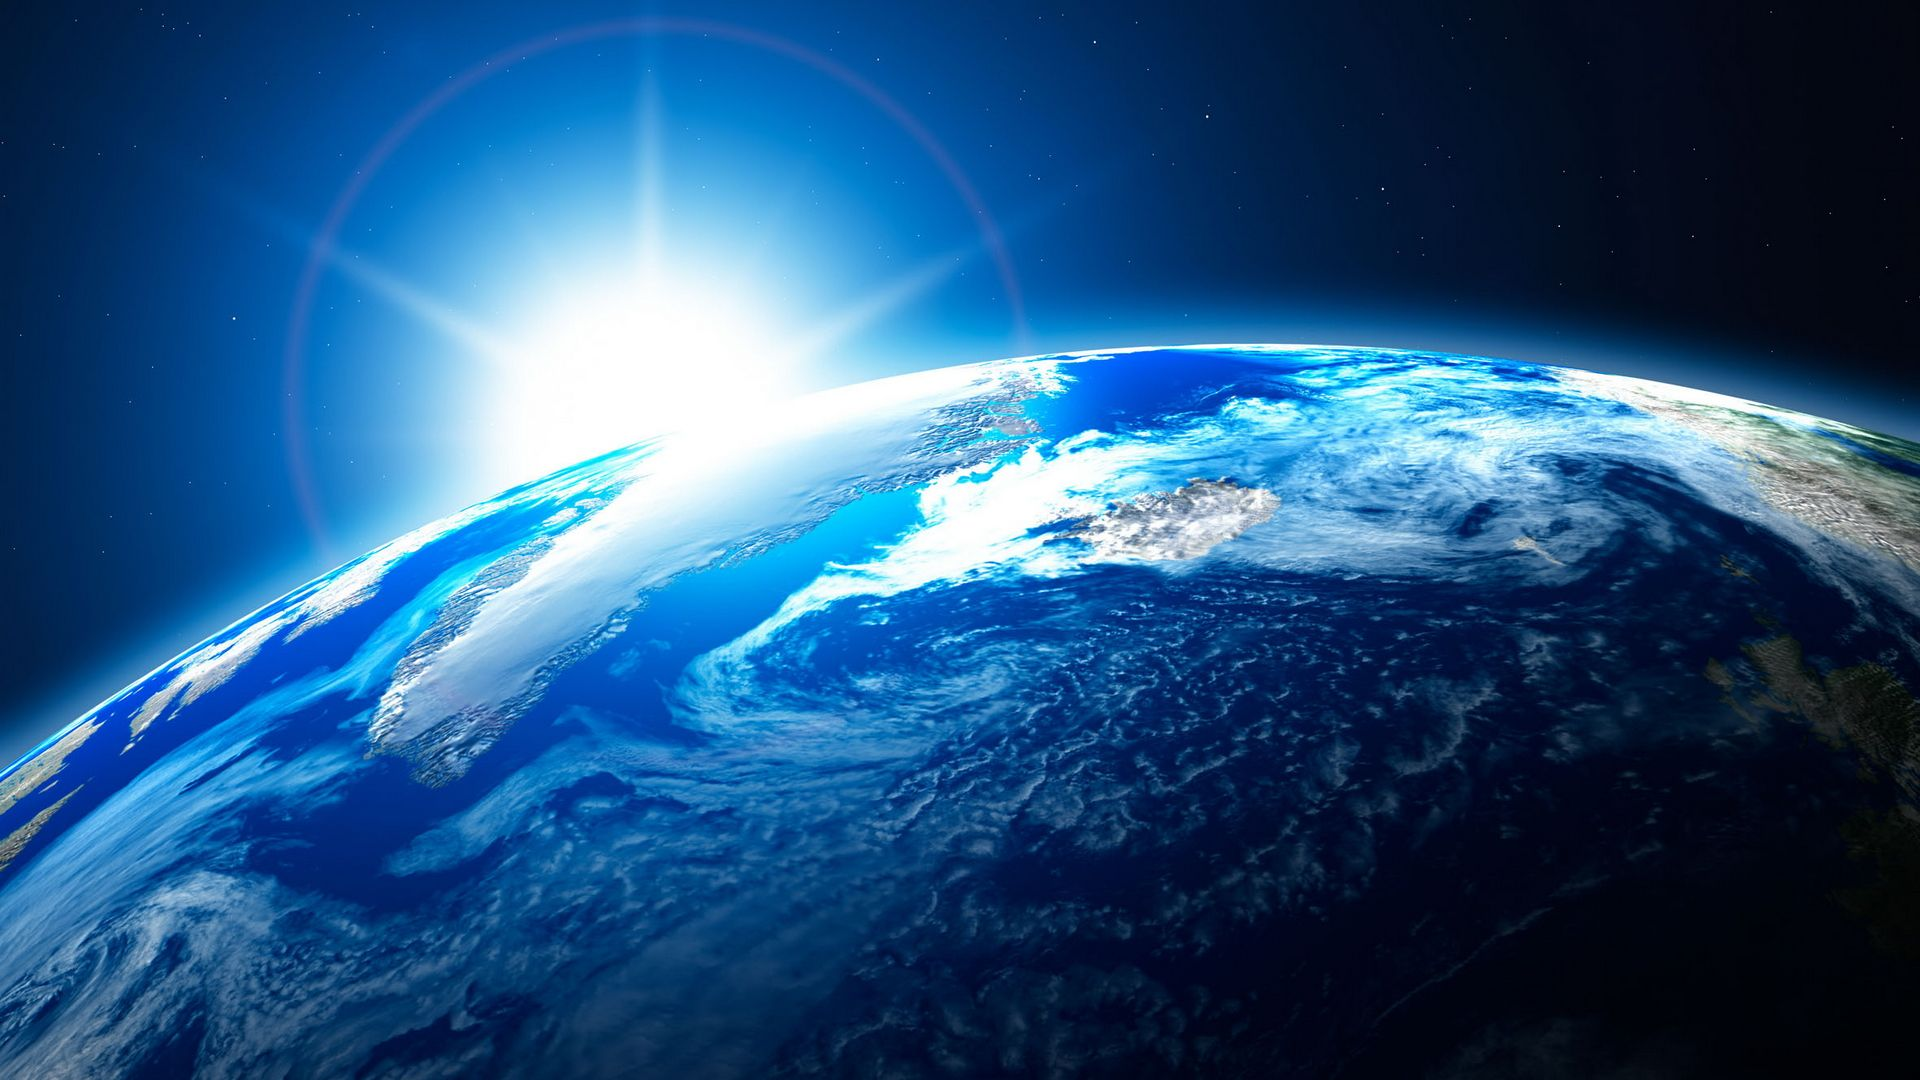 Earth wallpaper background